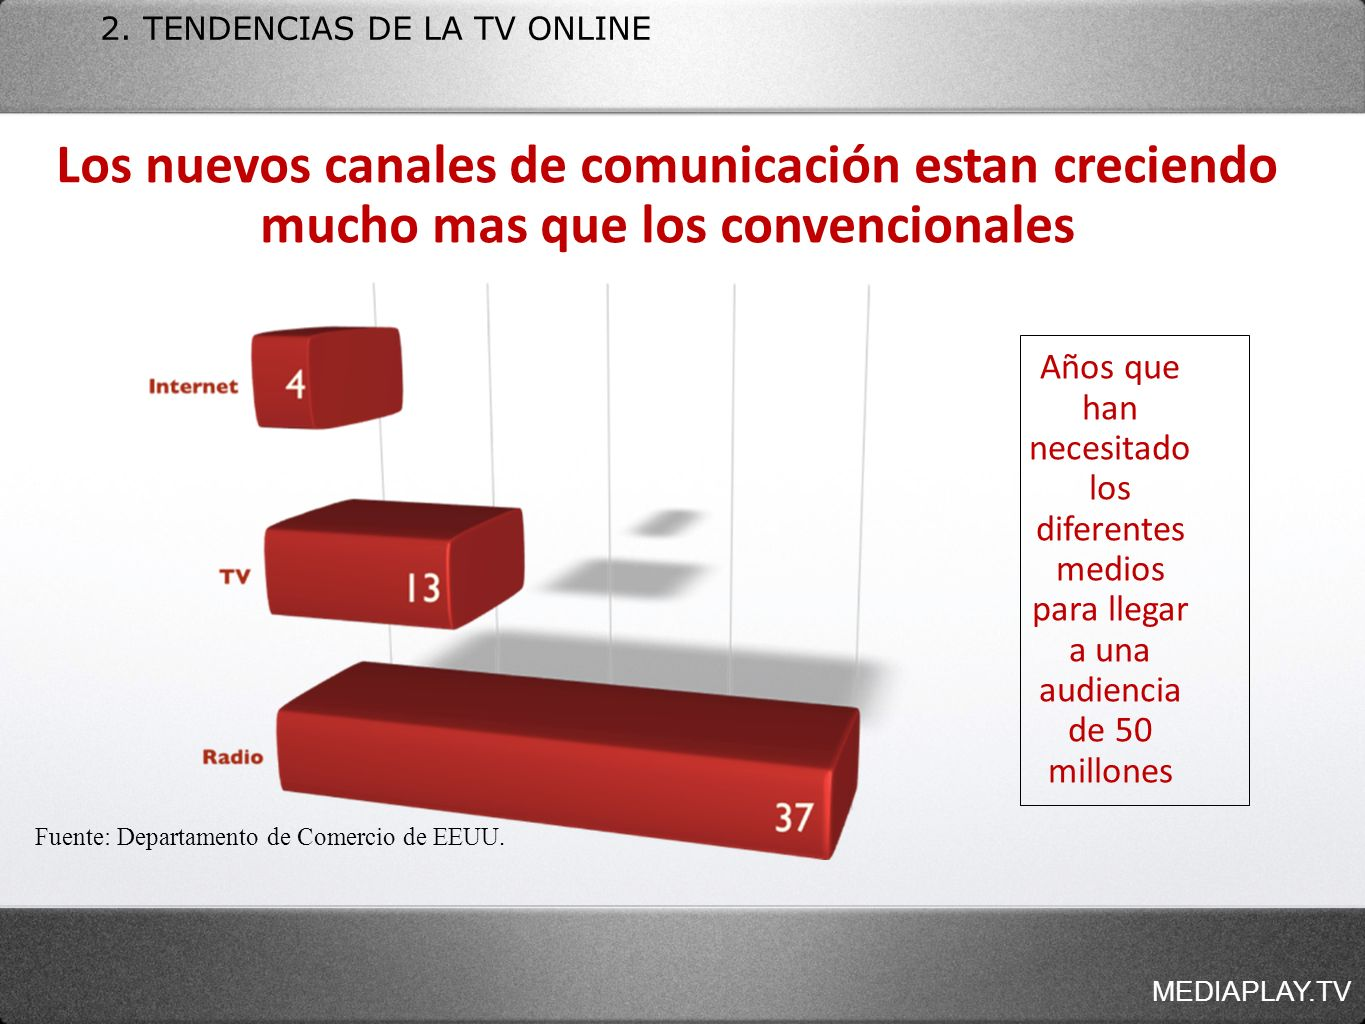 2. TENDENCIAS DE LA TV ONLINE